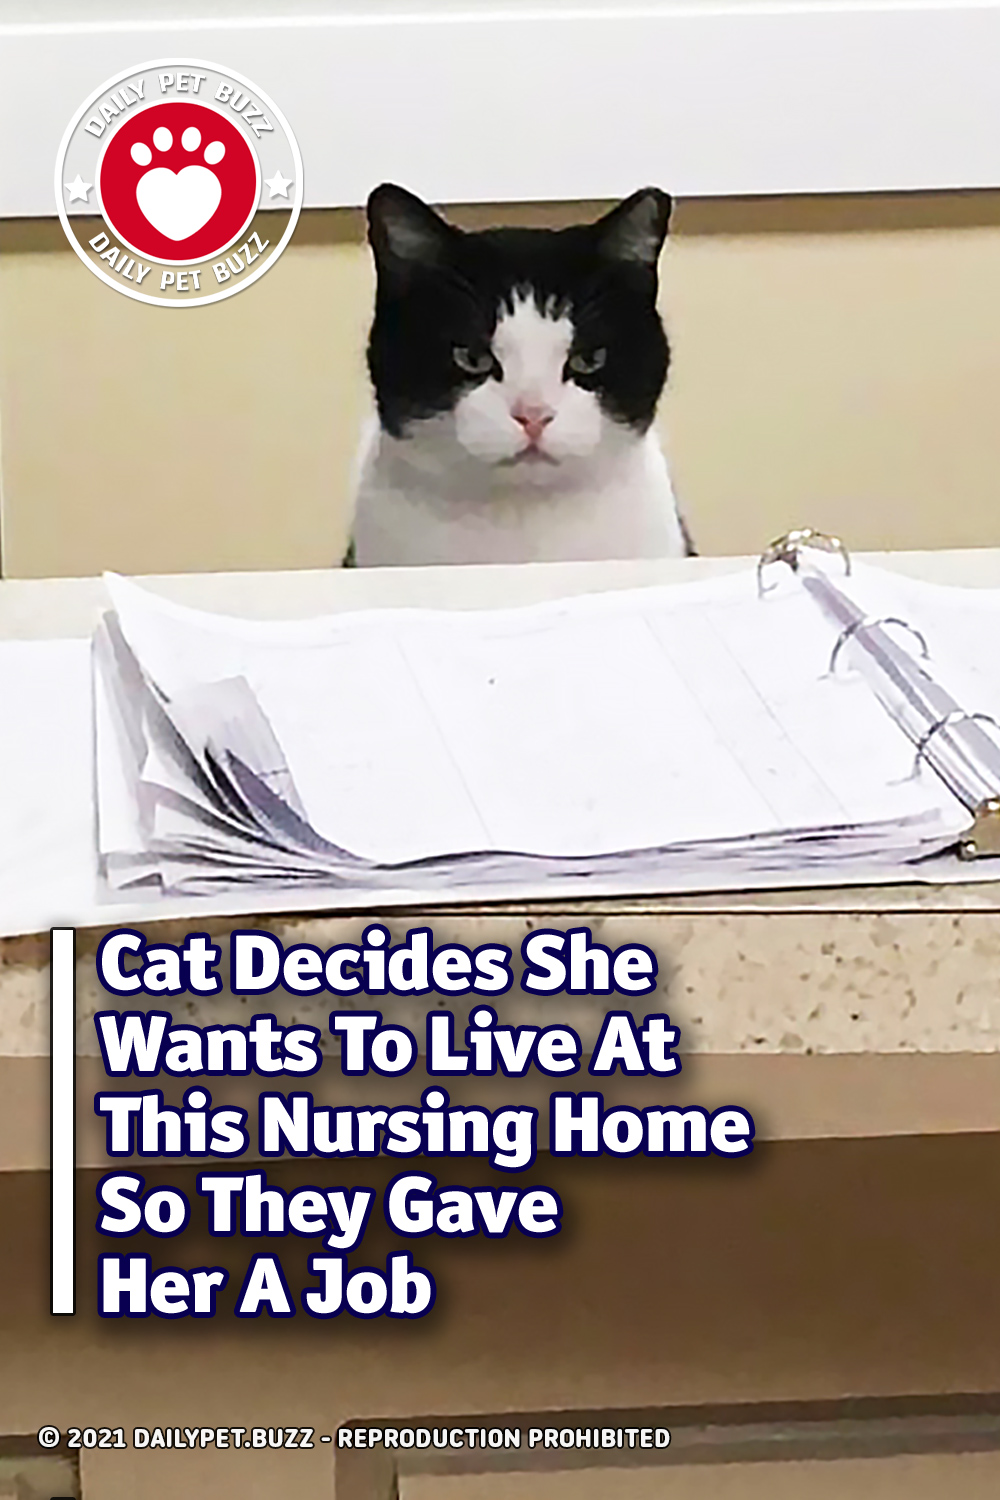 Cat Decides He Wants To Live At This Nursing Home So They Gave Her A Job